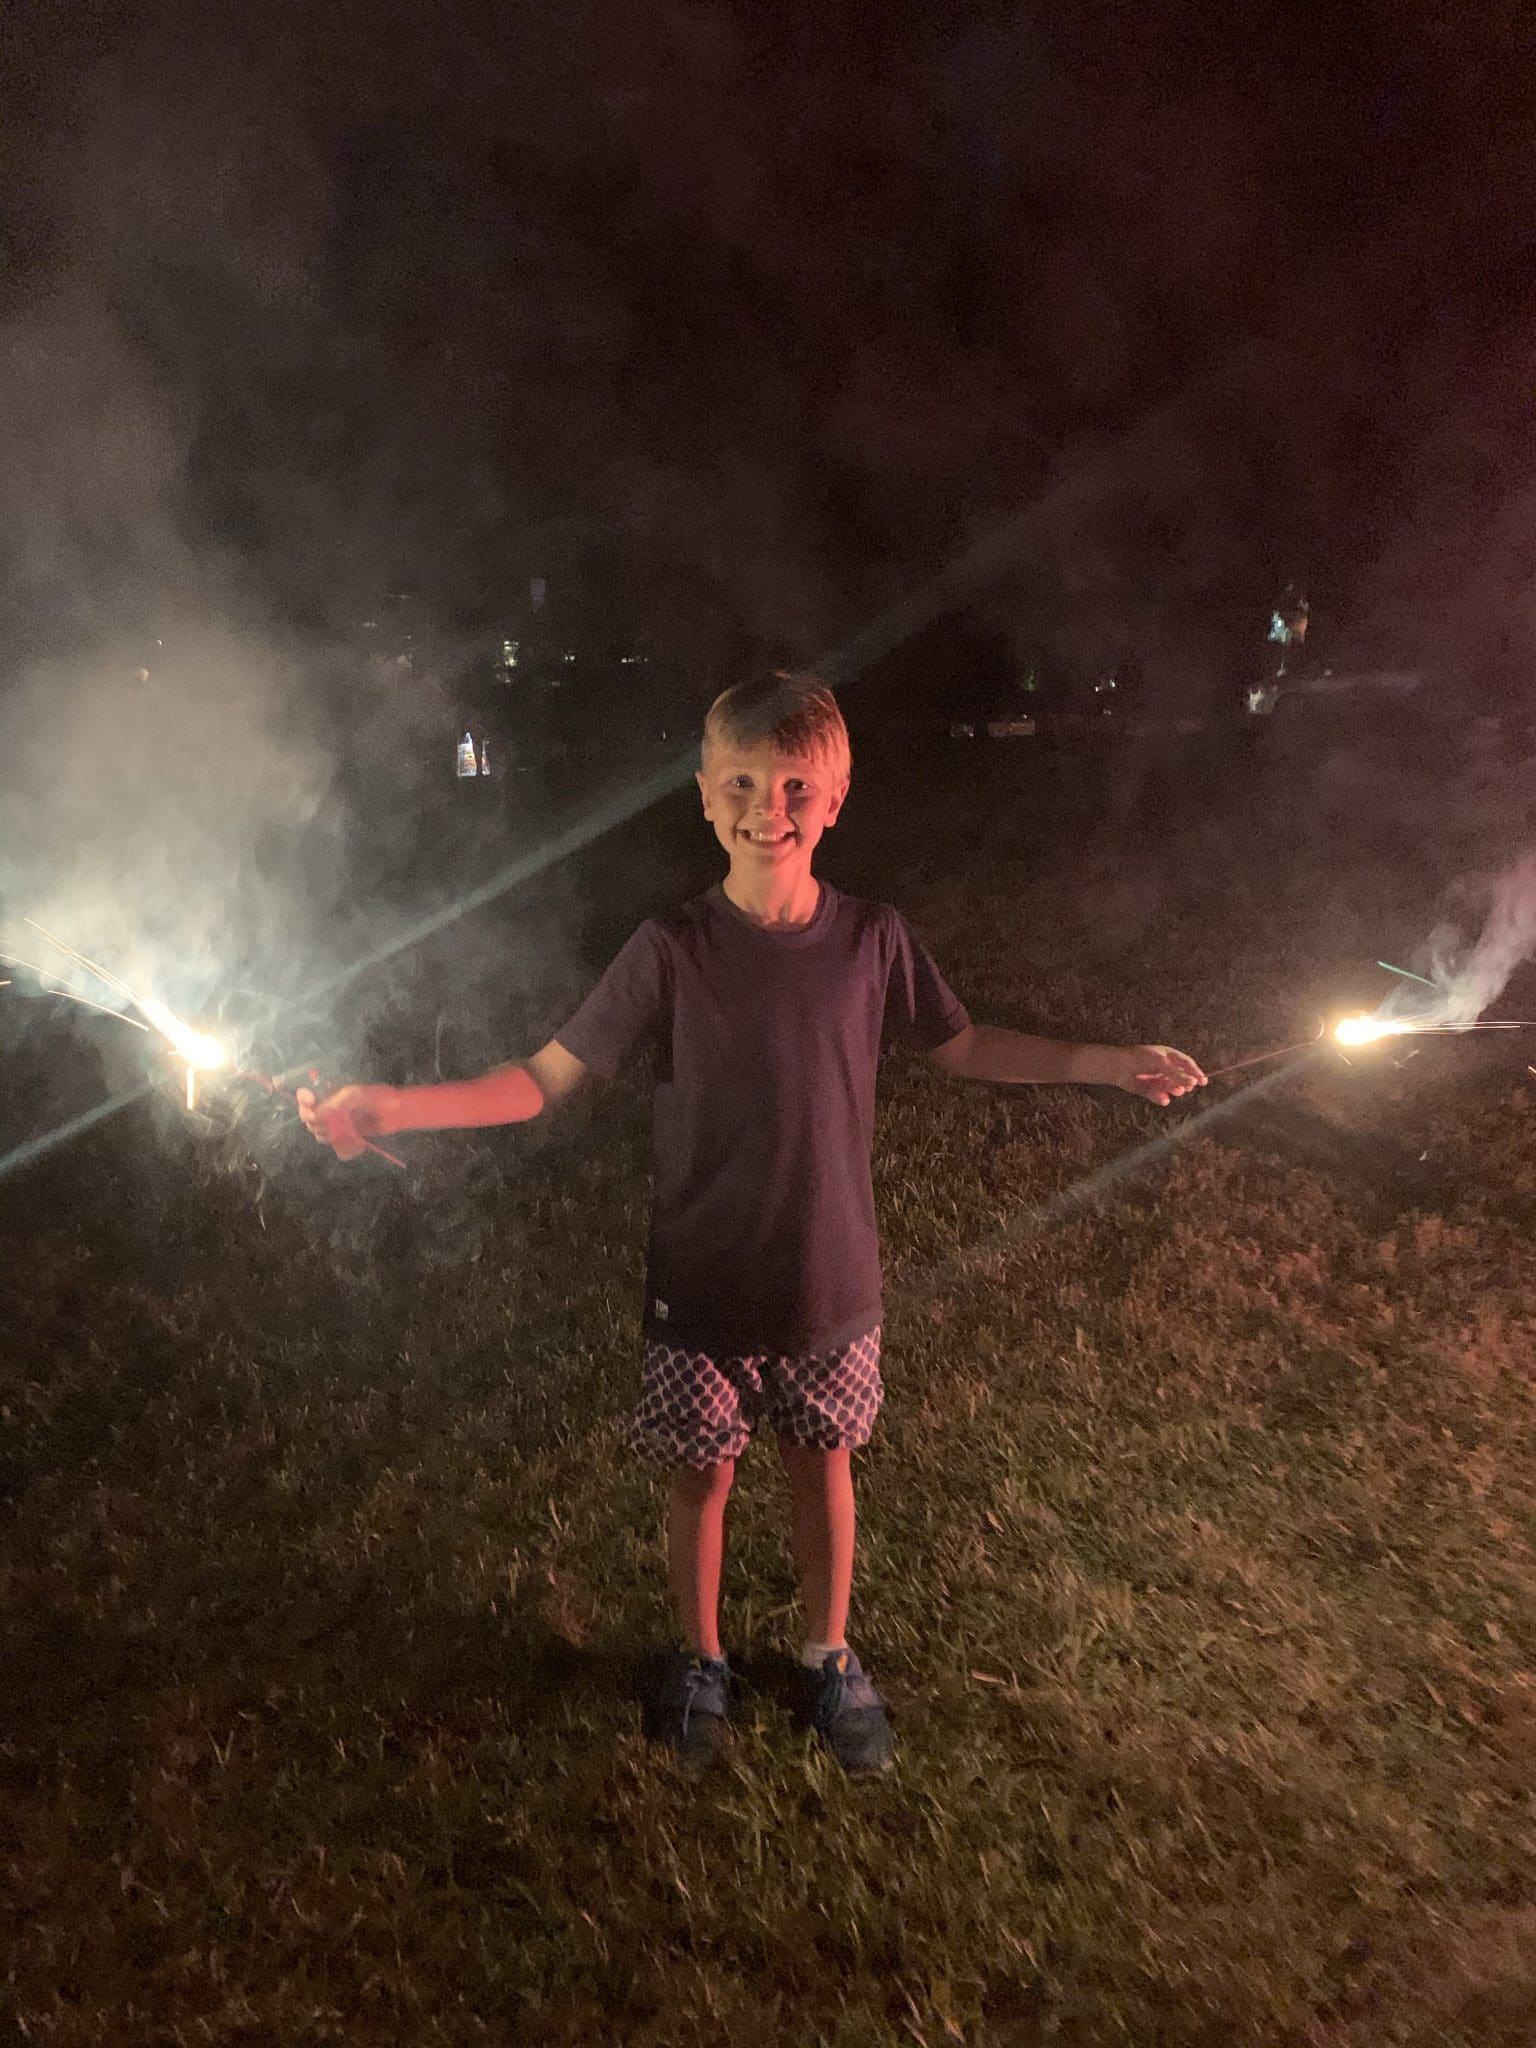 July 4th, Stilettos and Diapers